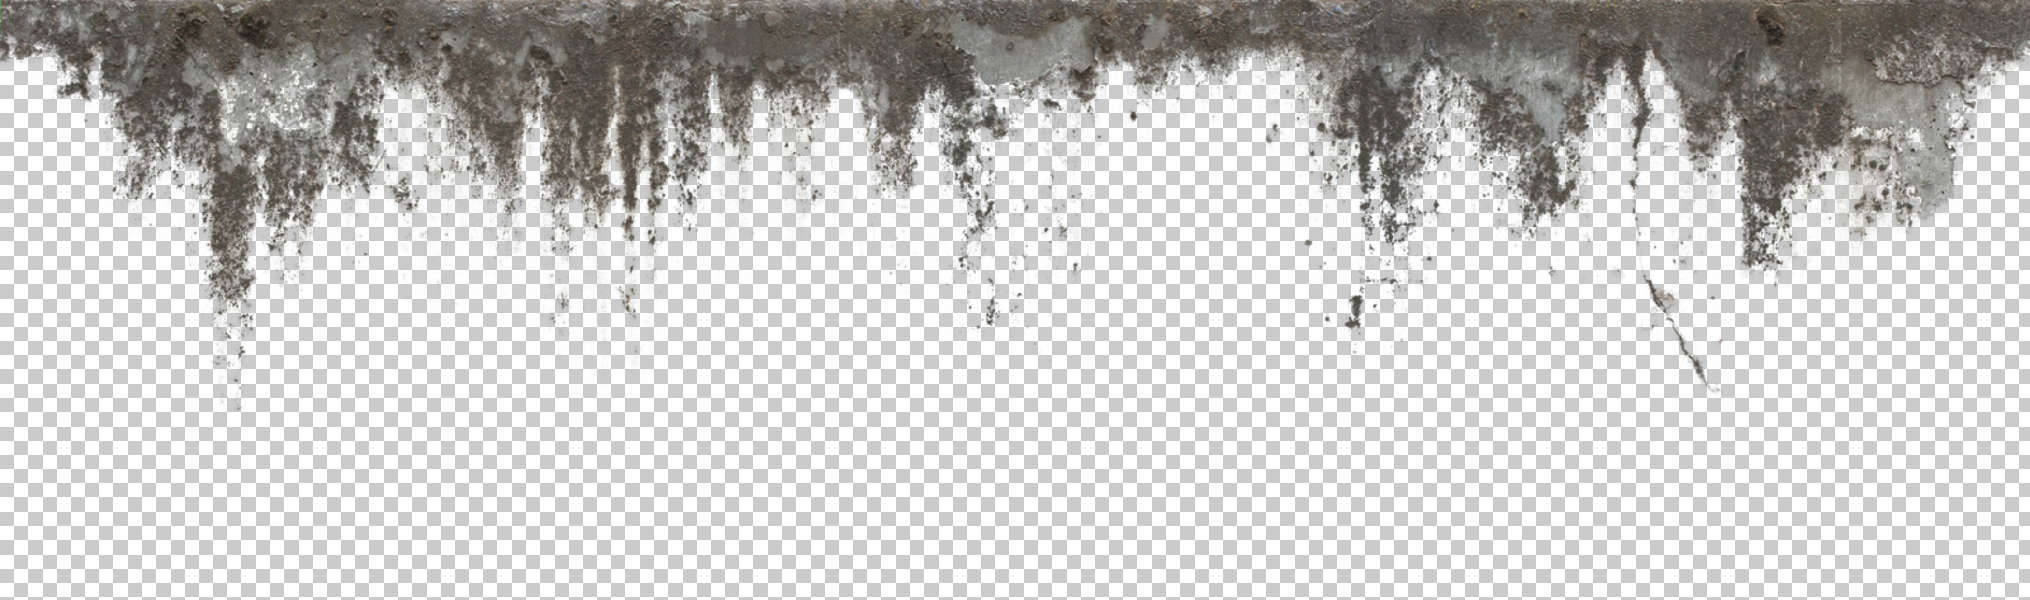 Decalsleaking0252 Free Background Texture Decal